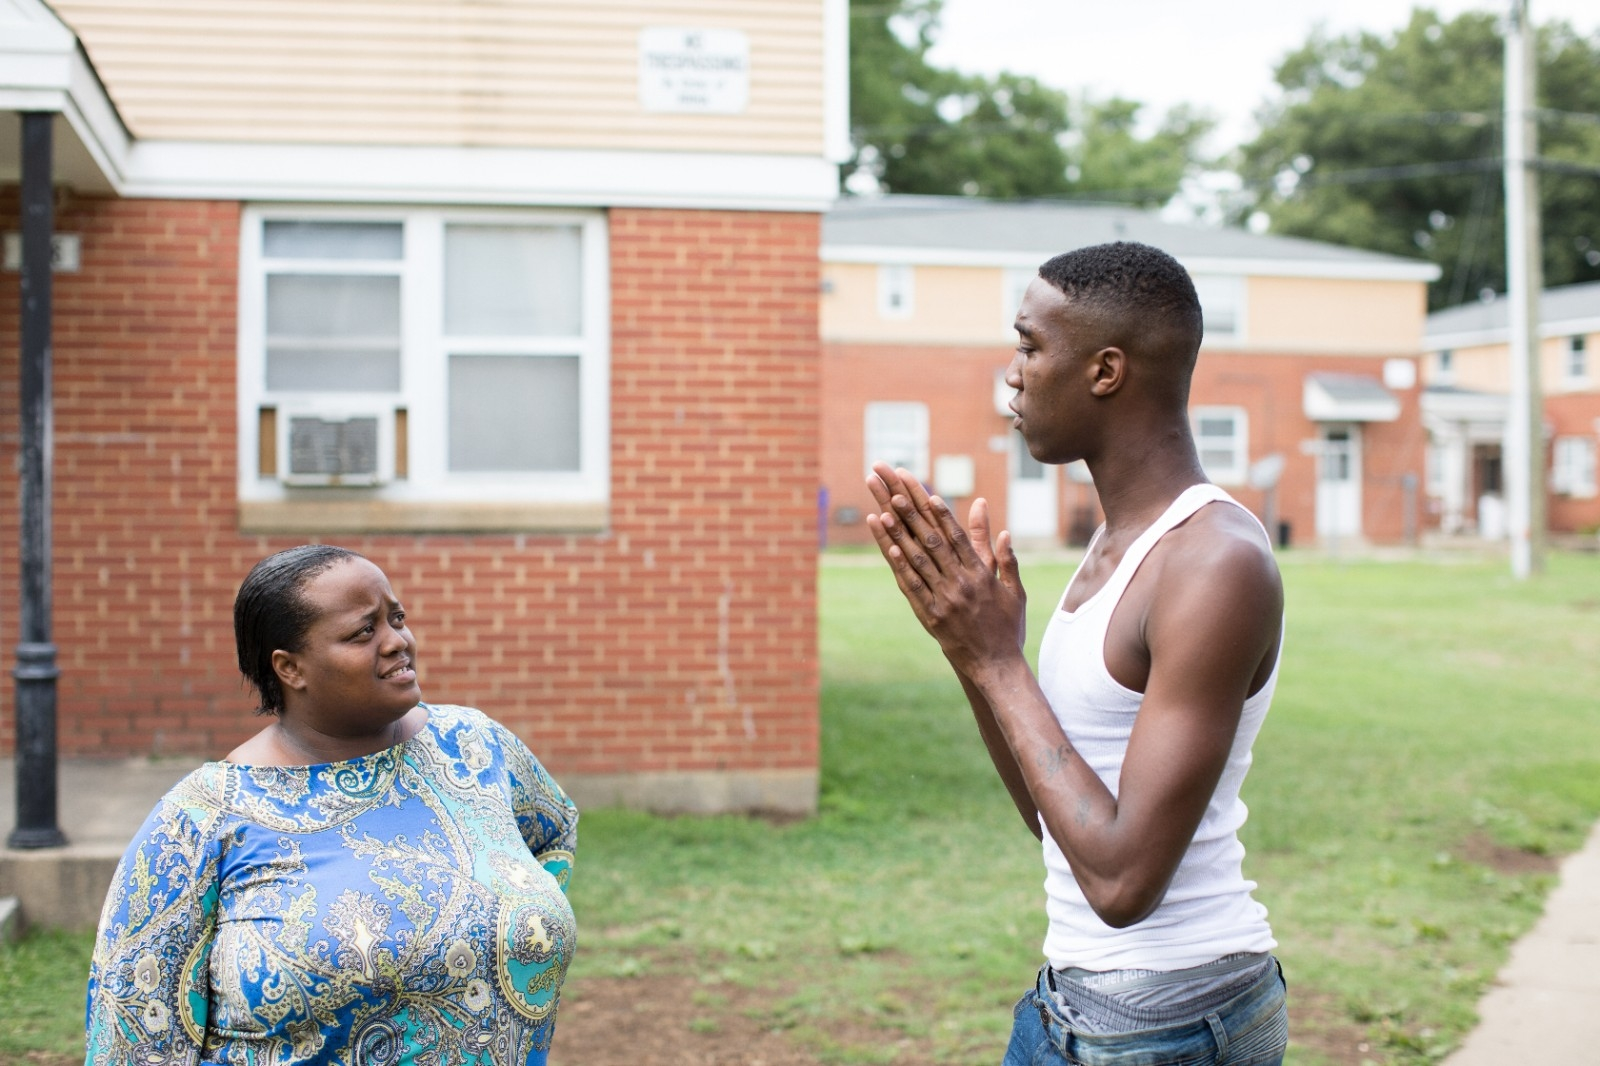 Two people have a discussion in the front yard of an apartment building.